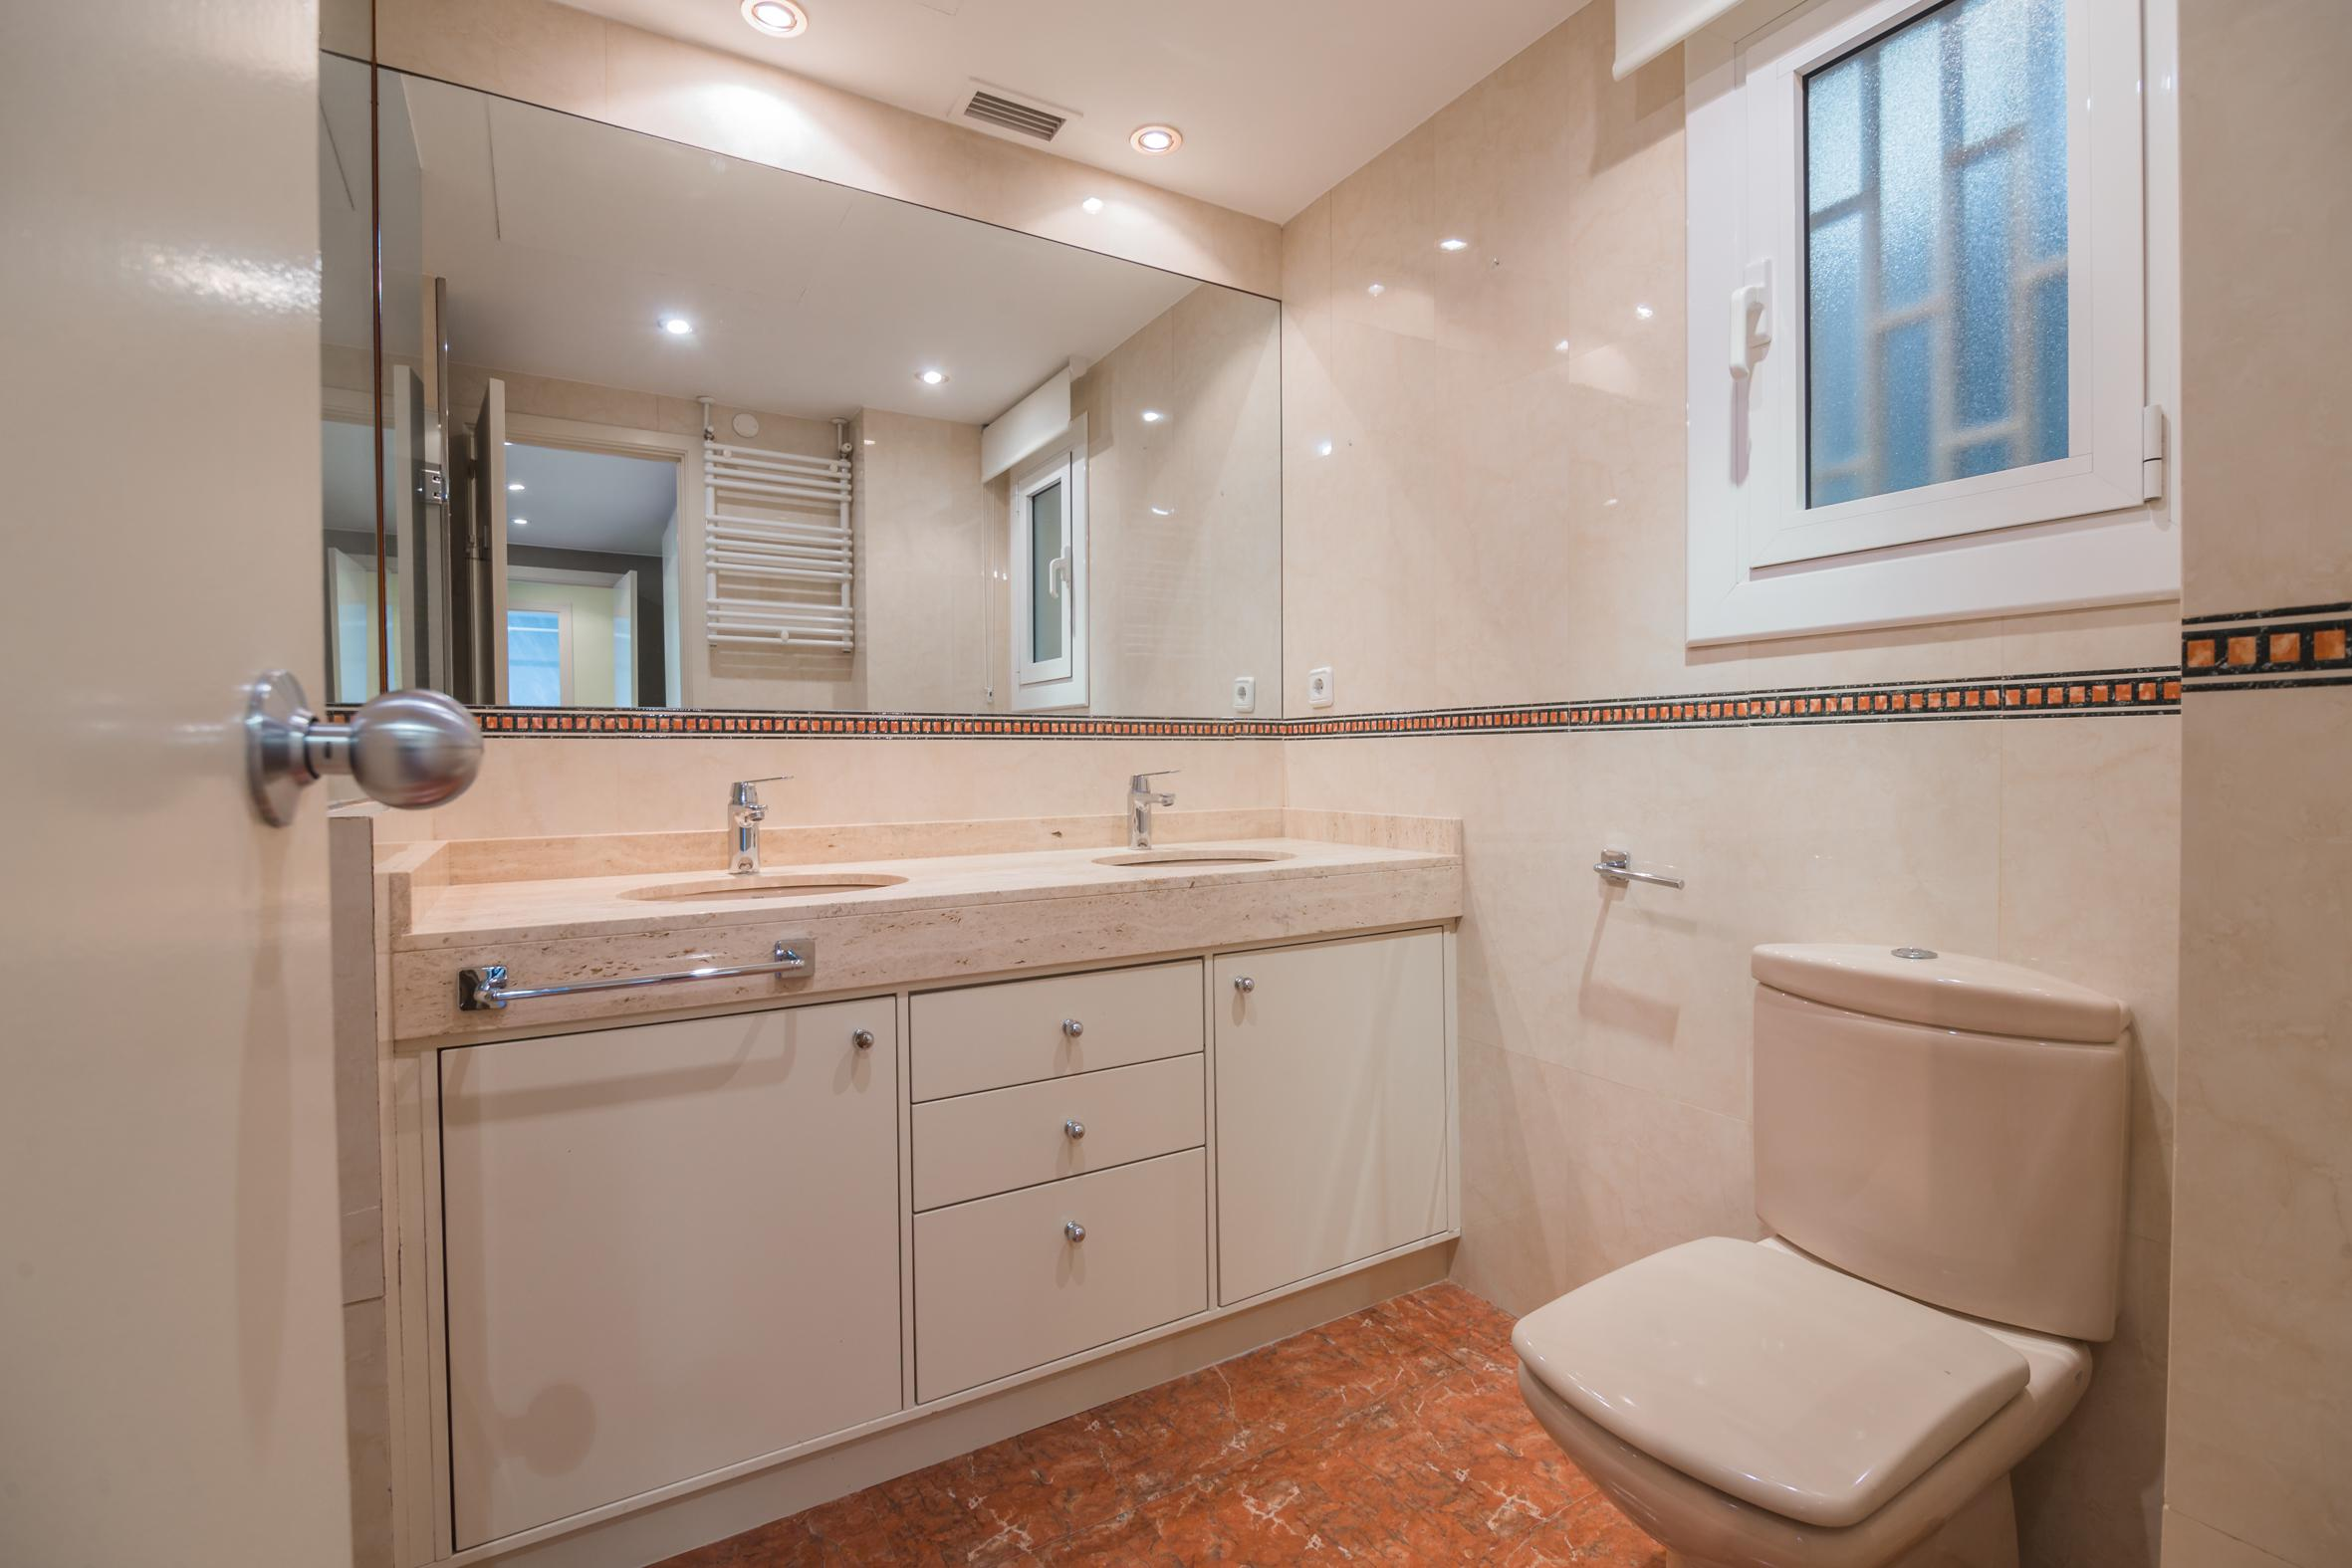 246902 Flat for sale in Les Corts, Pedralbes 14